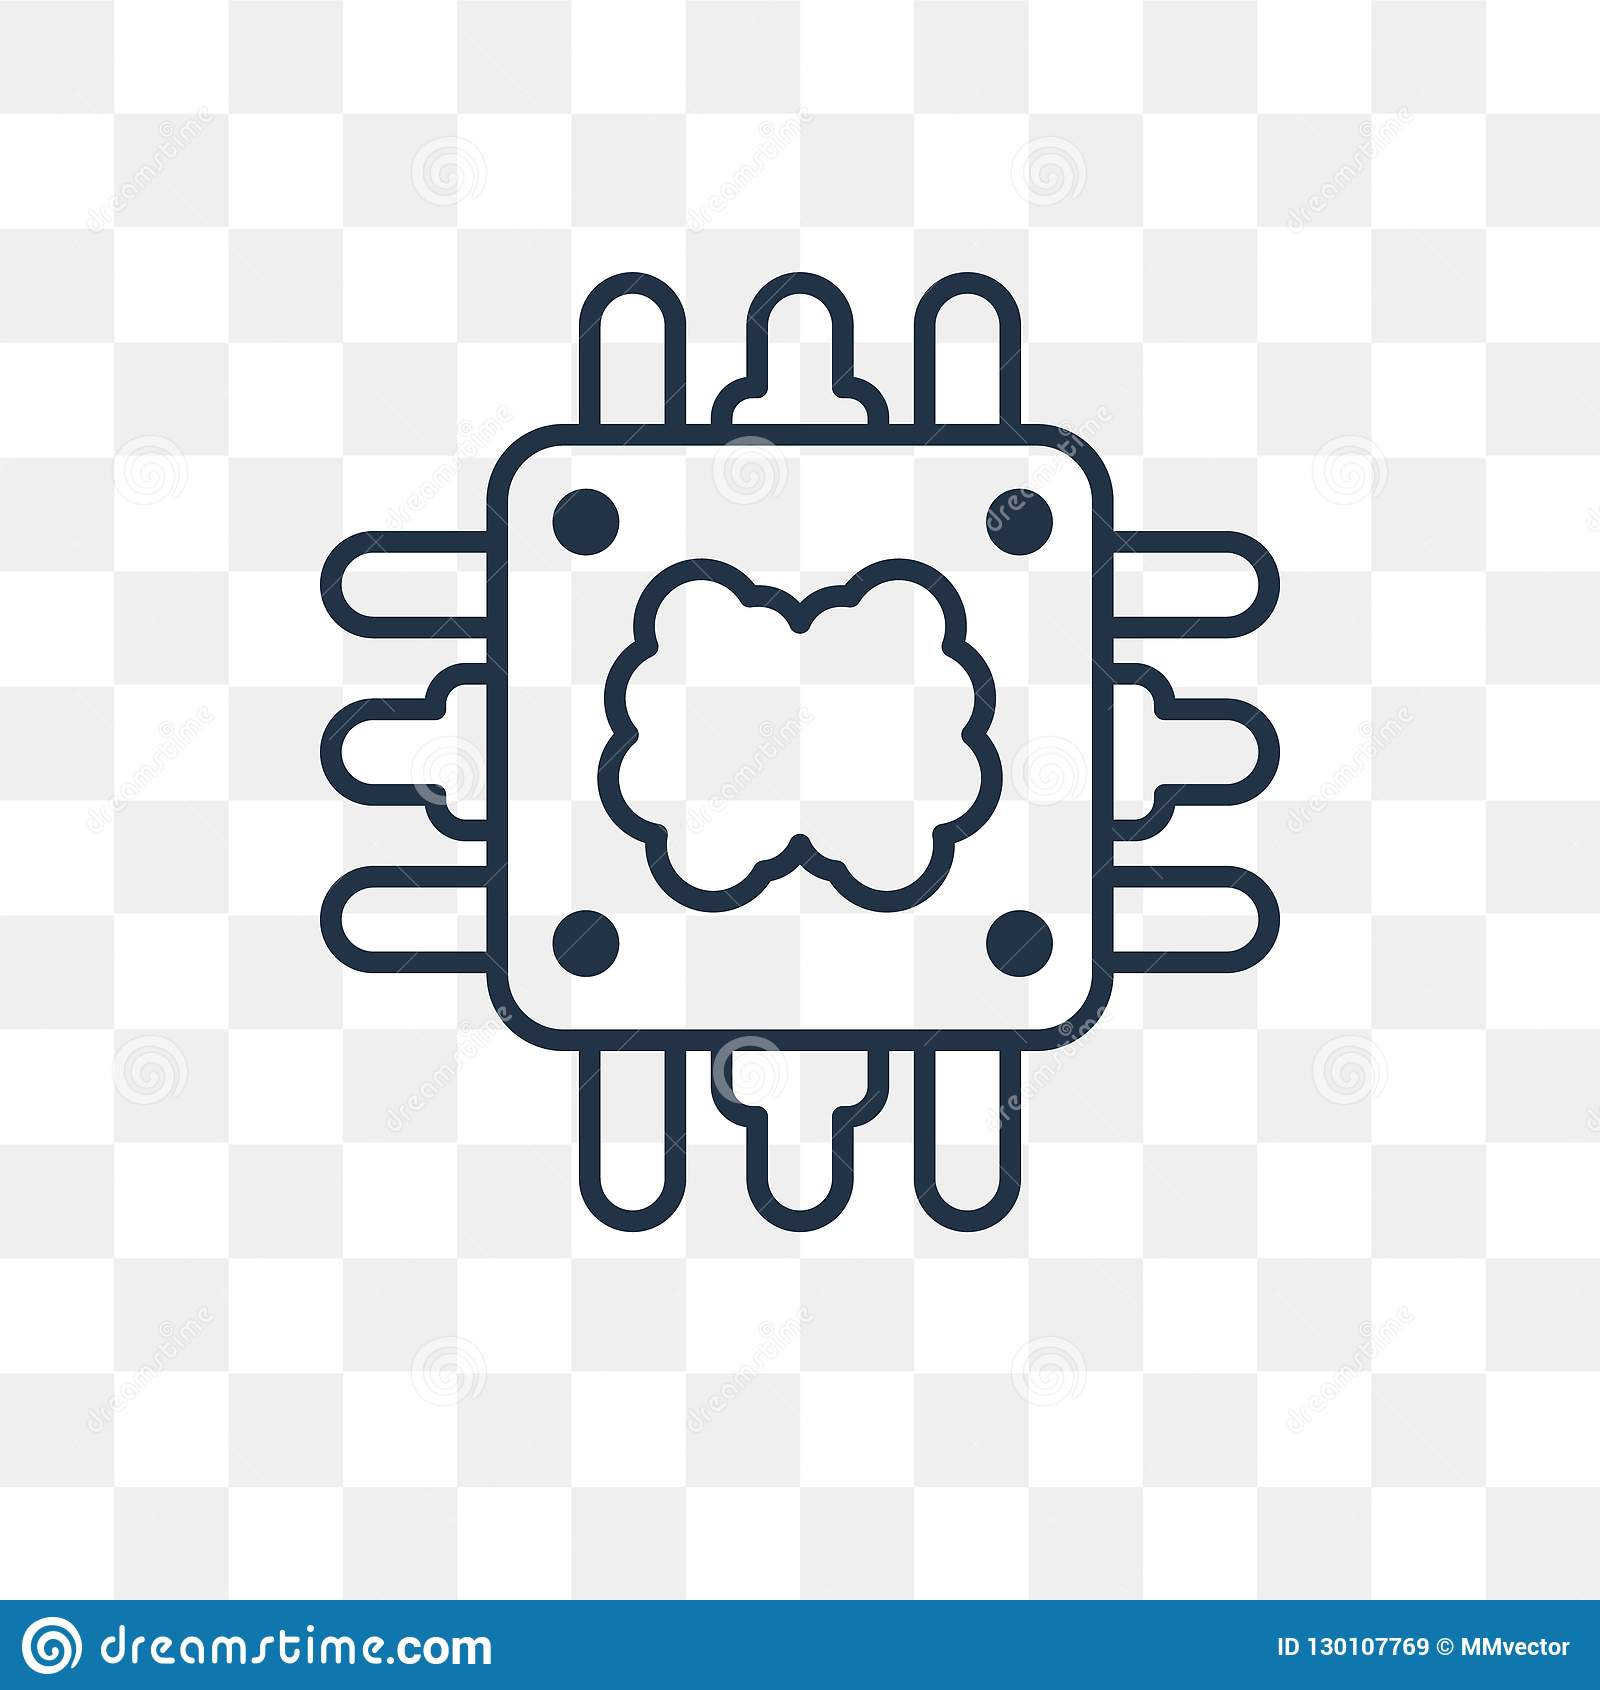 22+ Transparent Cpu Vector